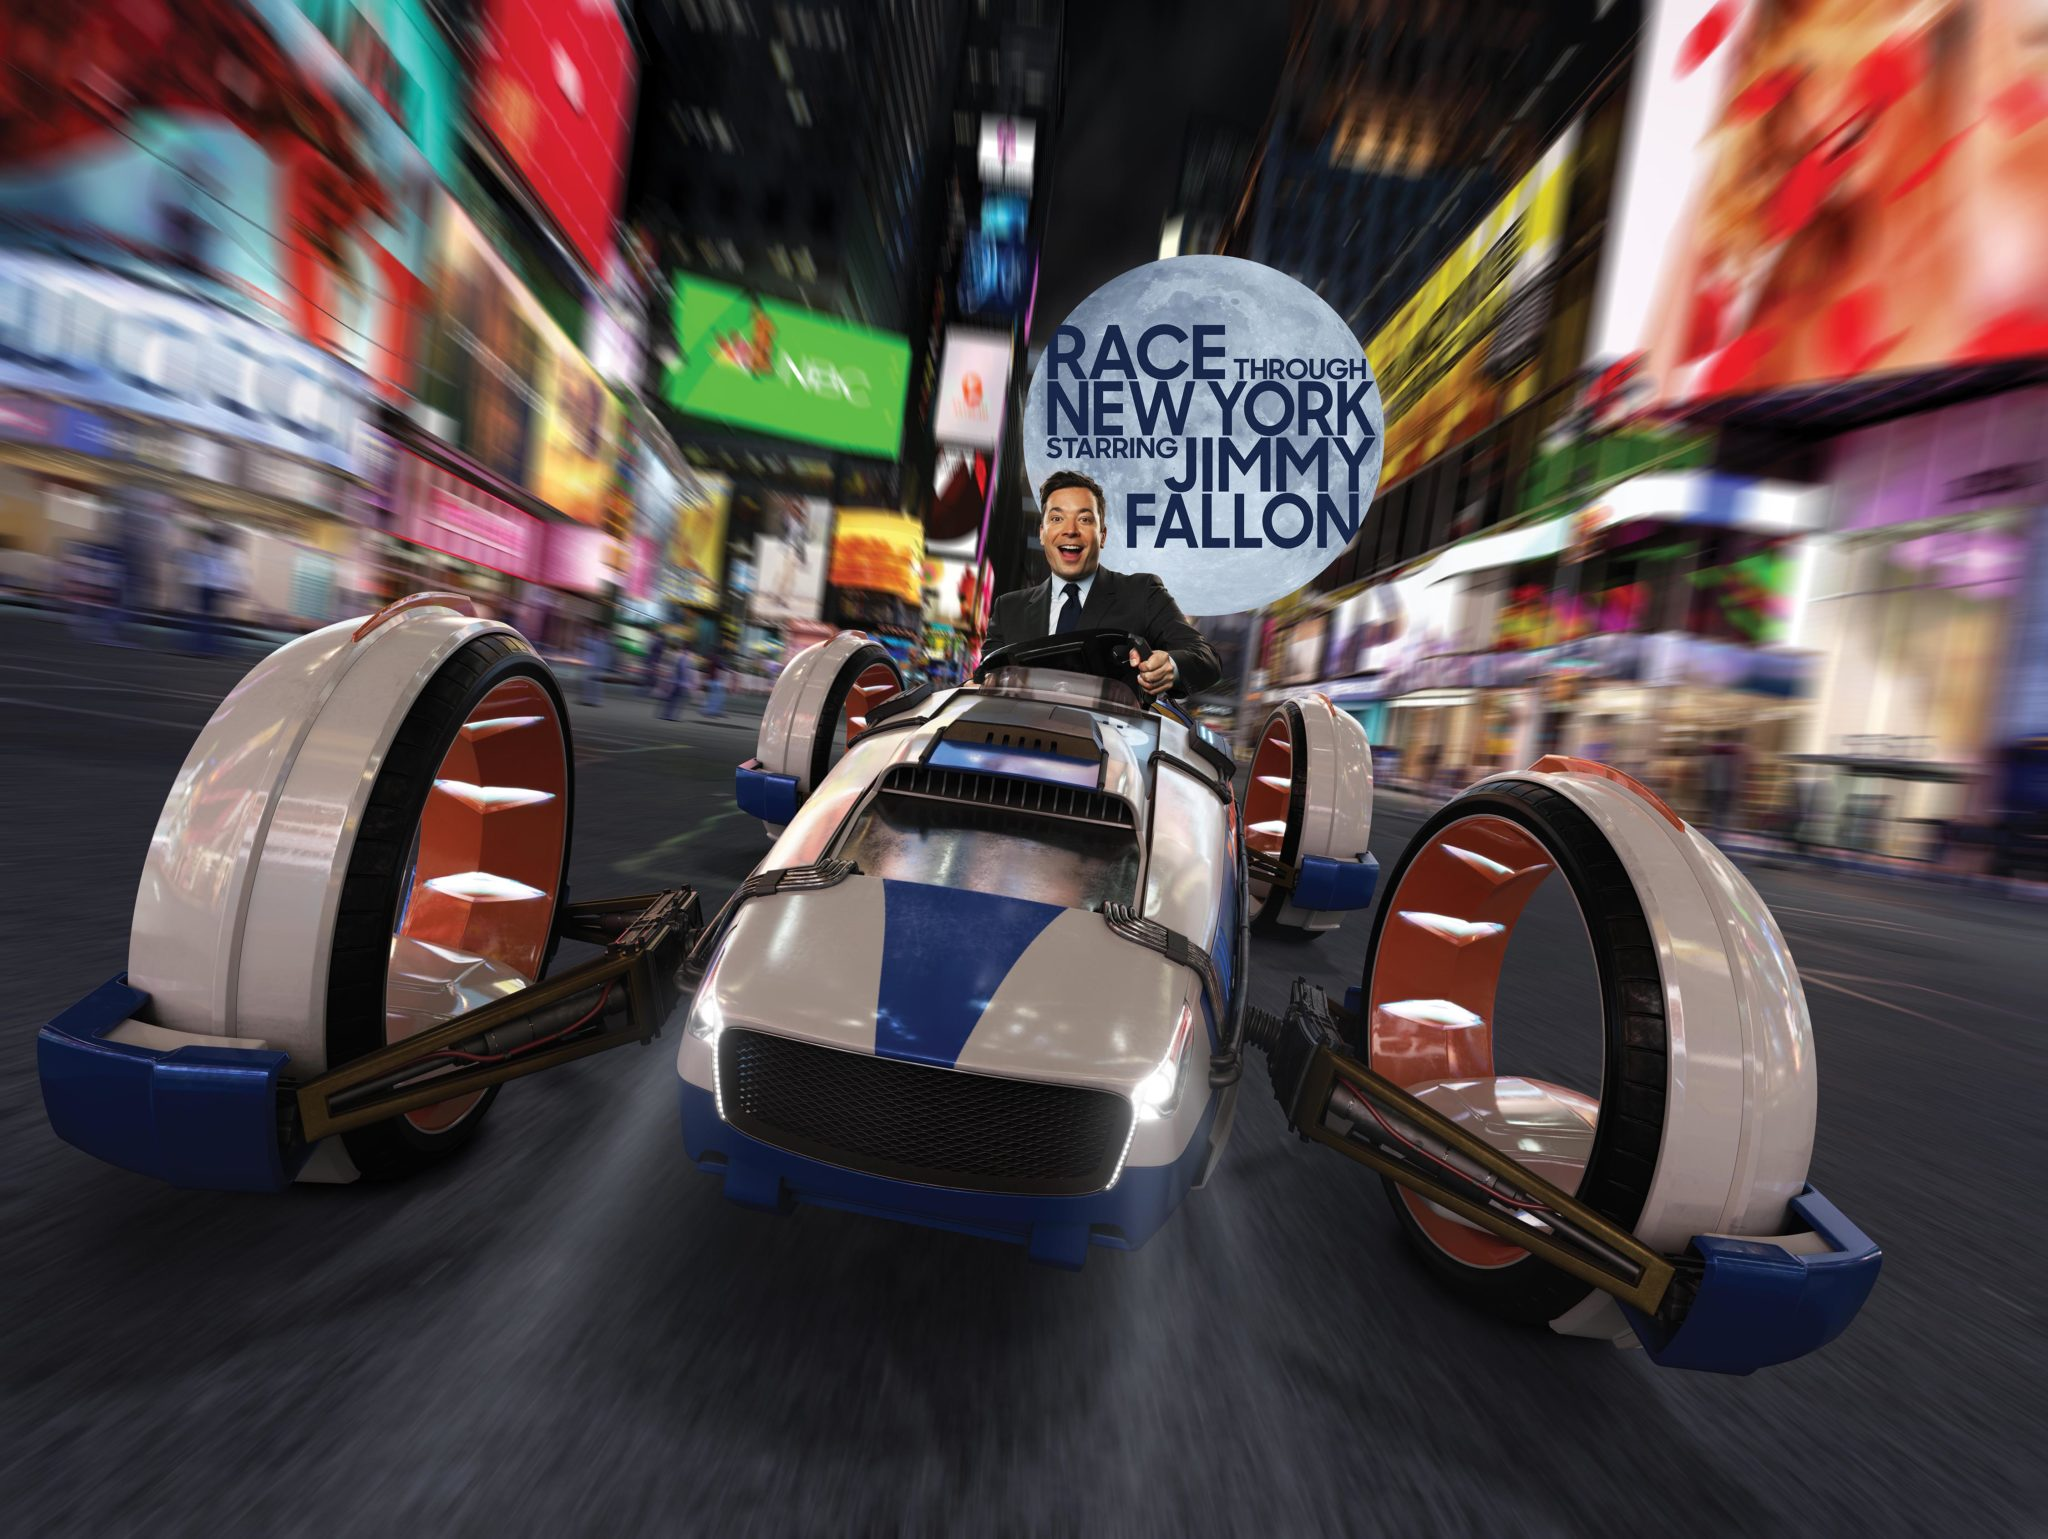 Grand Opening Date Announced for Race Through New York Starring Jimmy Fallon at Universal Orlando #OffTMSM 8